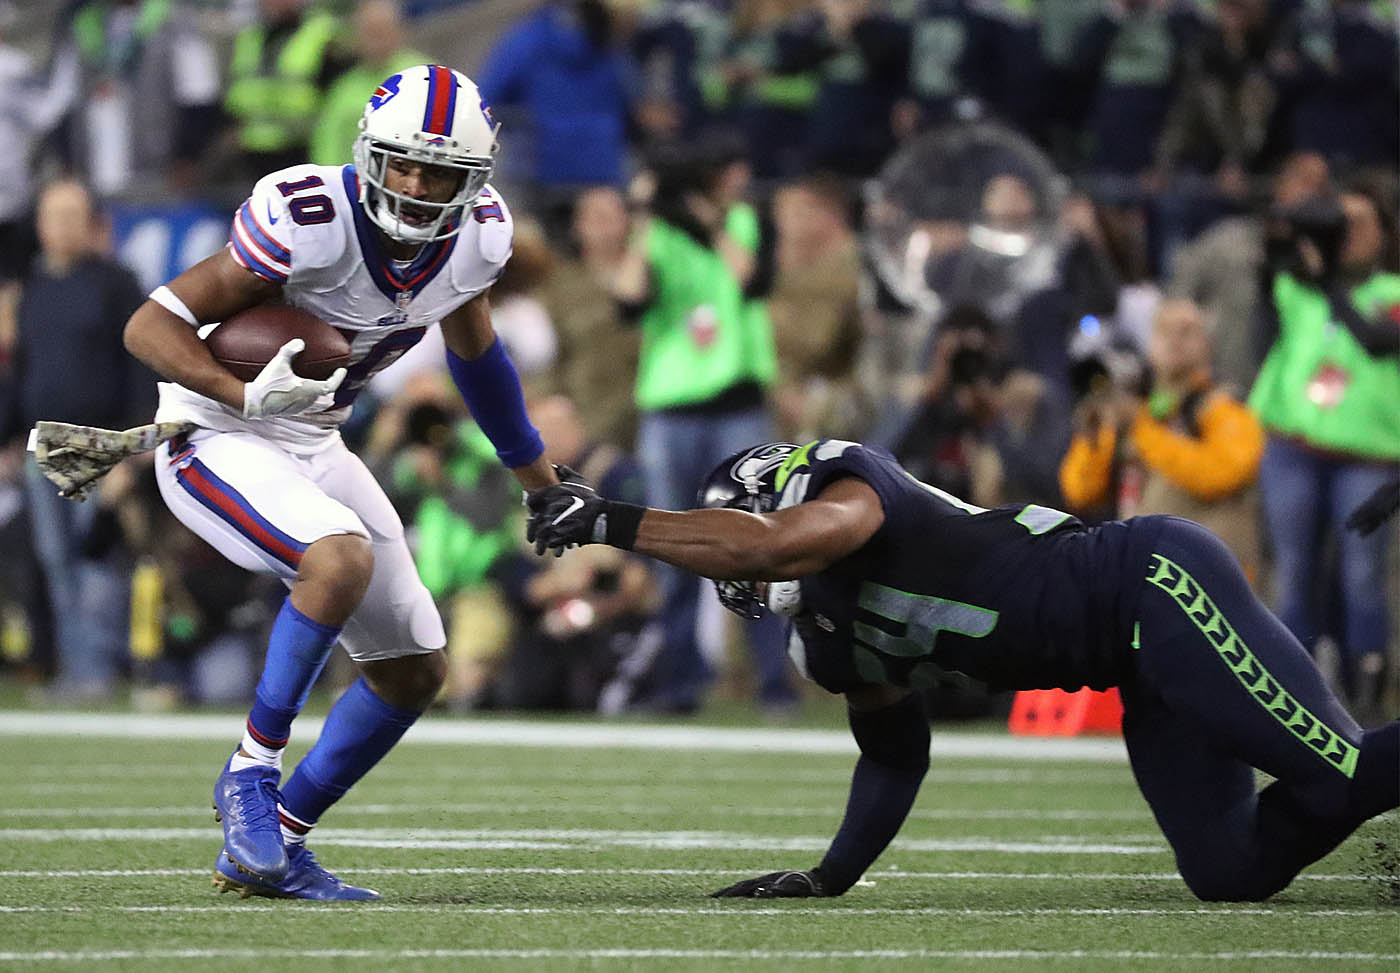 Buffalo Bills wide receiver Robert Woods (10) runs with the ball as Seattle Seahawks middle linebacker Bobby Wagner (54) tries to make a tackle during the third quarter of a game at CenturyLink Field in Seattle on Monday, Nov. 7, 2016. (James P. McCoy/Buffalo News)